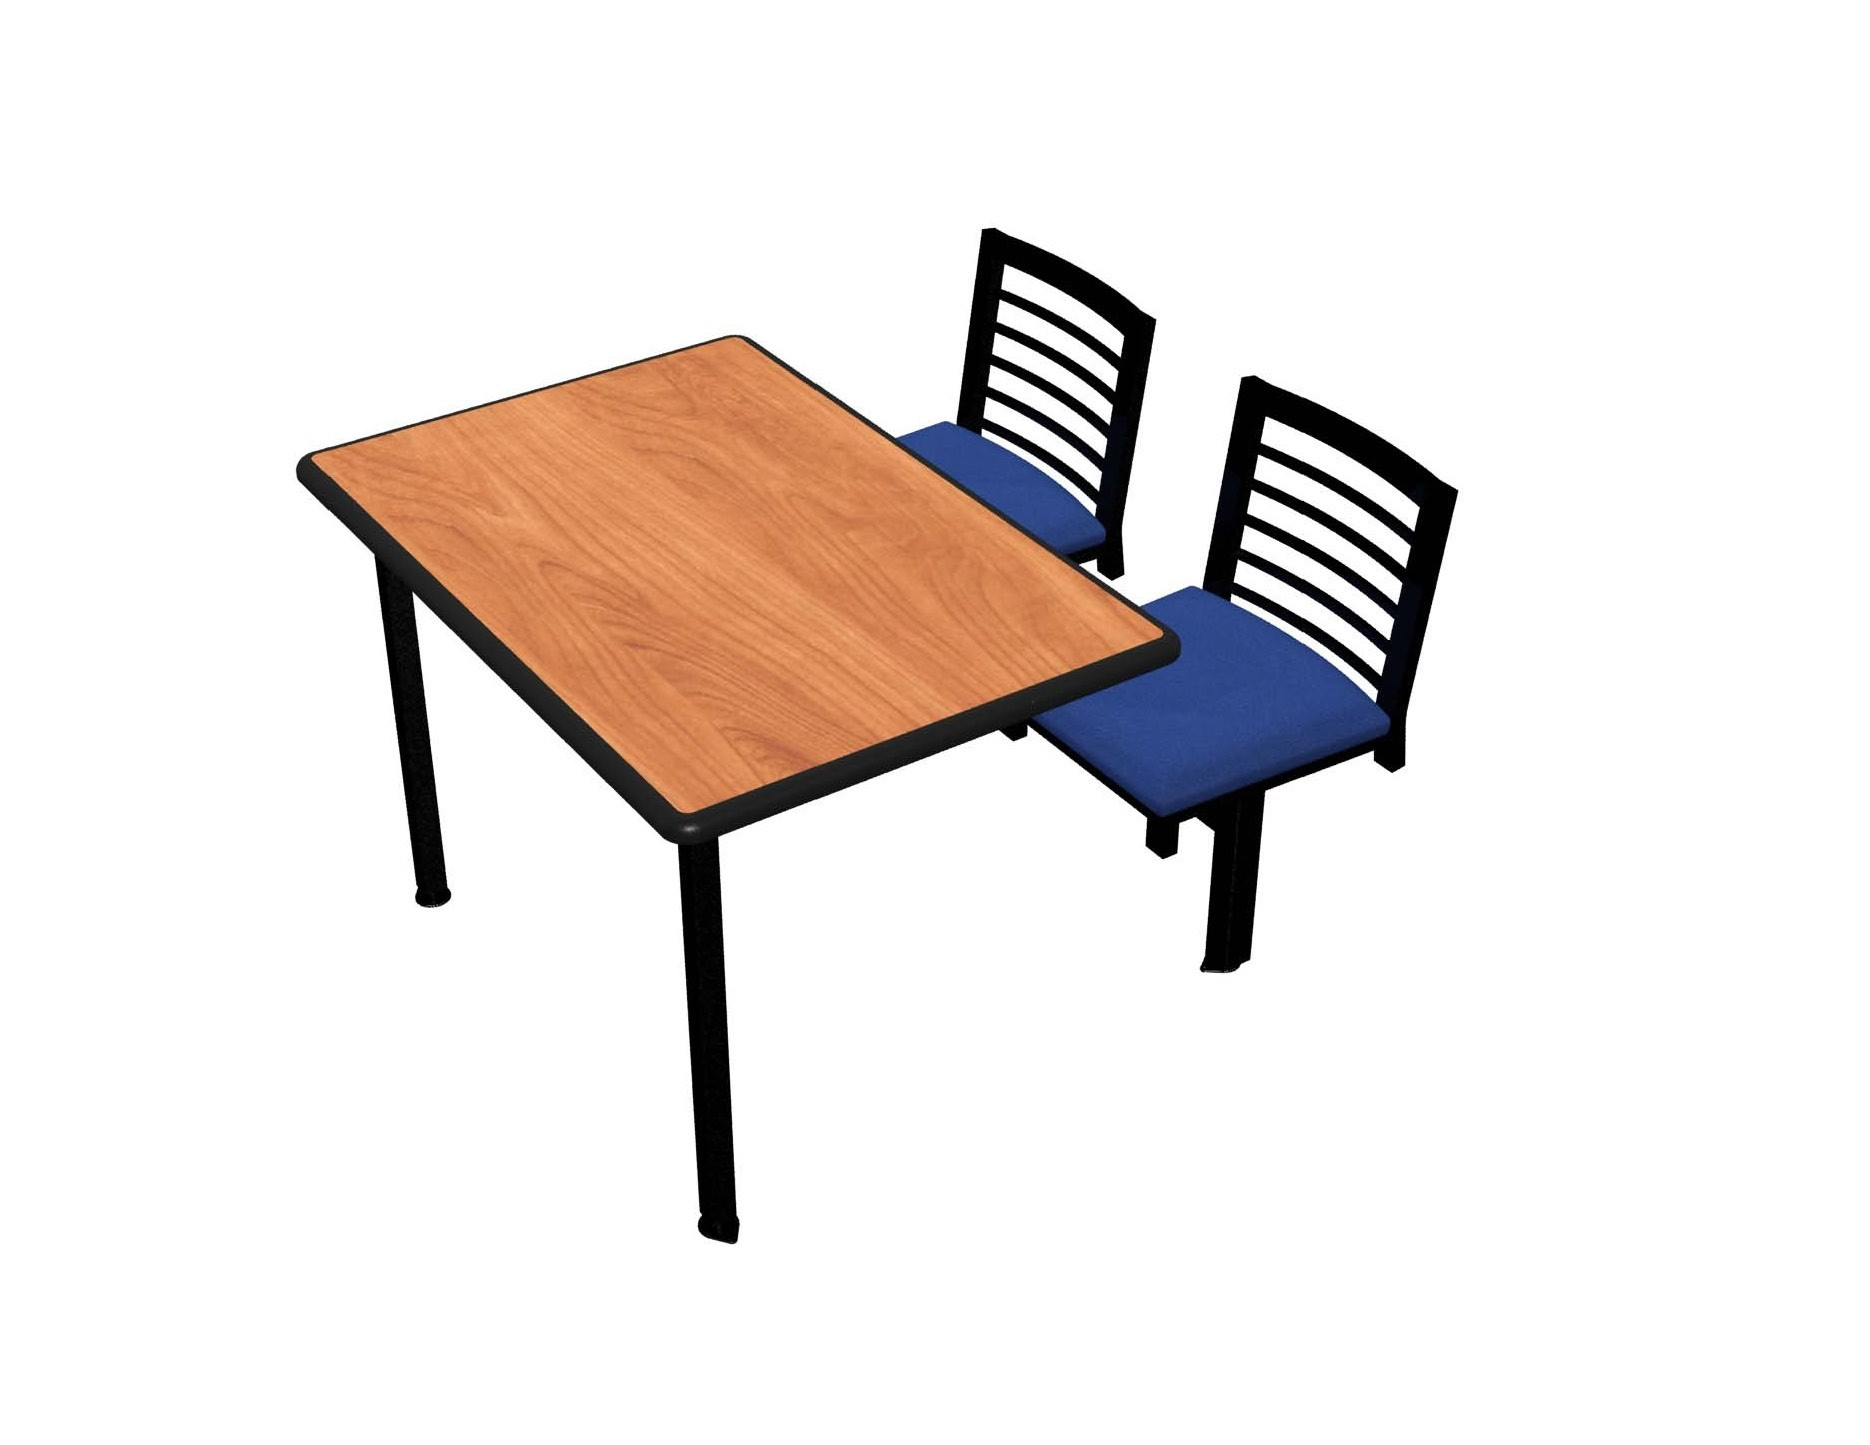 Wild Cherry laminate, Black Dur-A-Edge®, Latitude chairhead with Bluejay seat